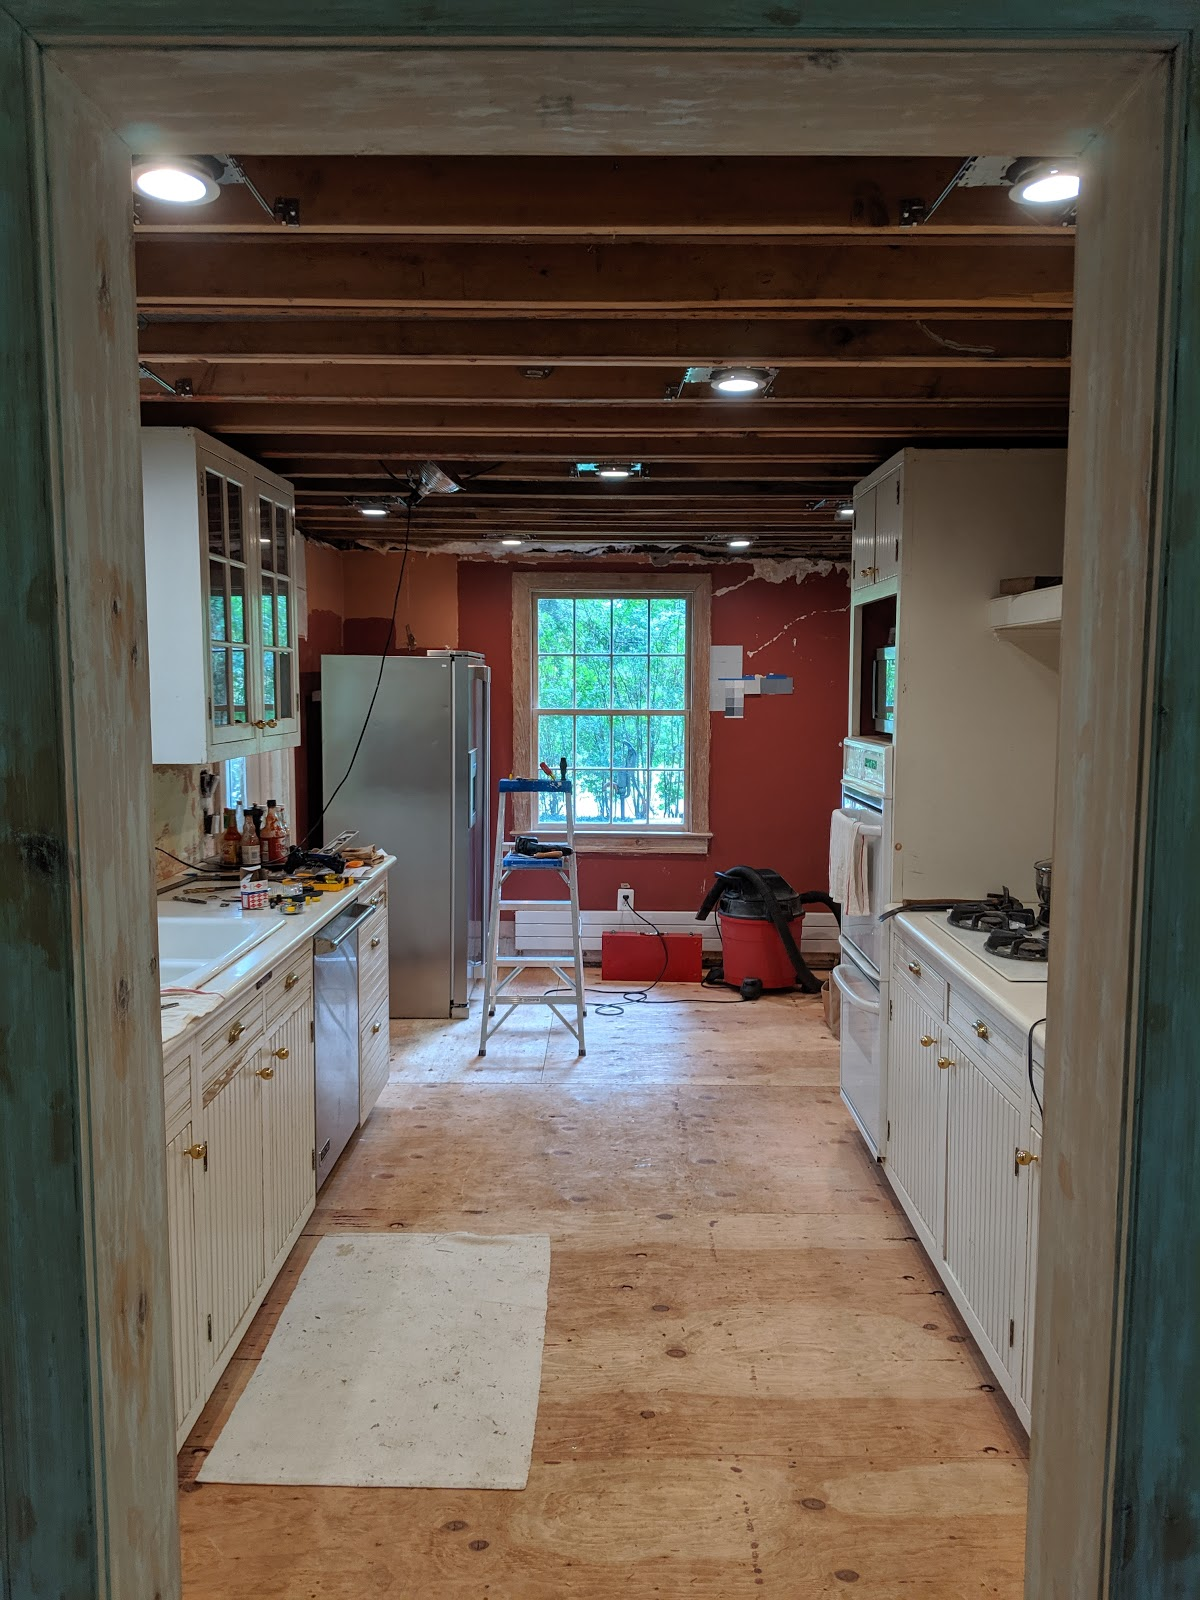 an old farm recessed cans in a kitchen